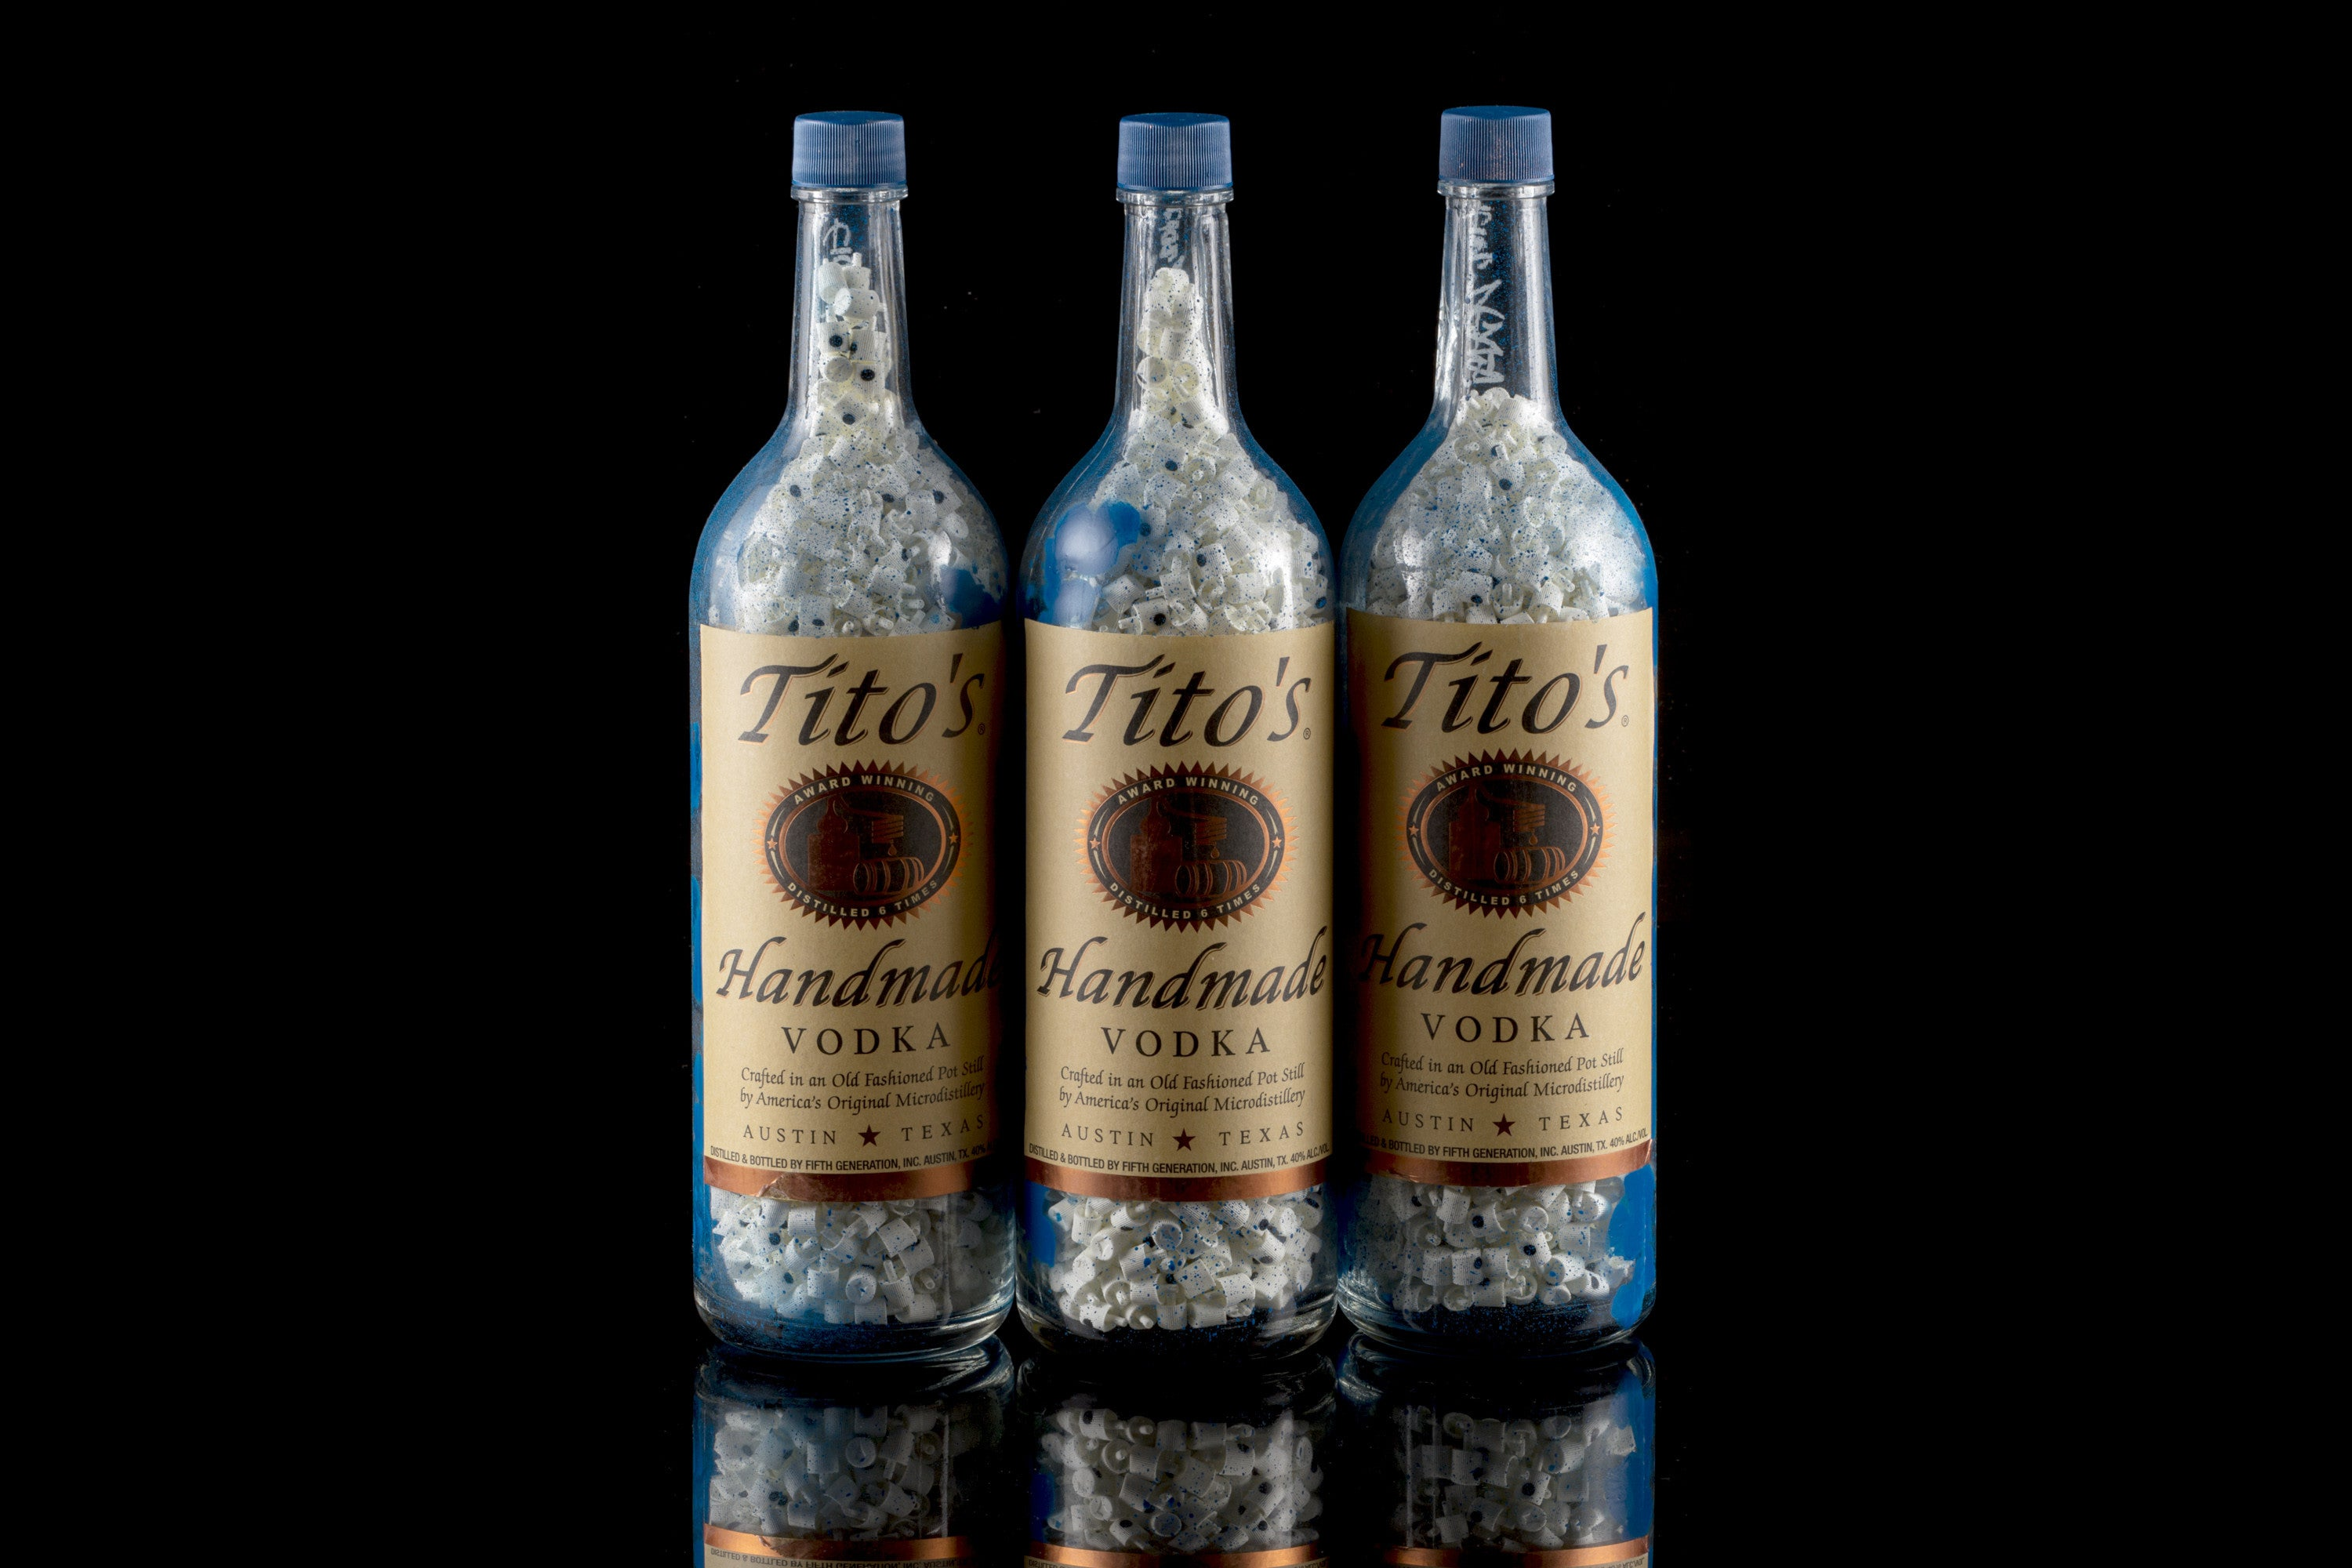 Stash x Tito's Vodka